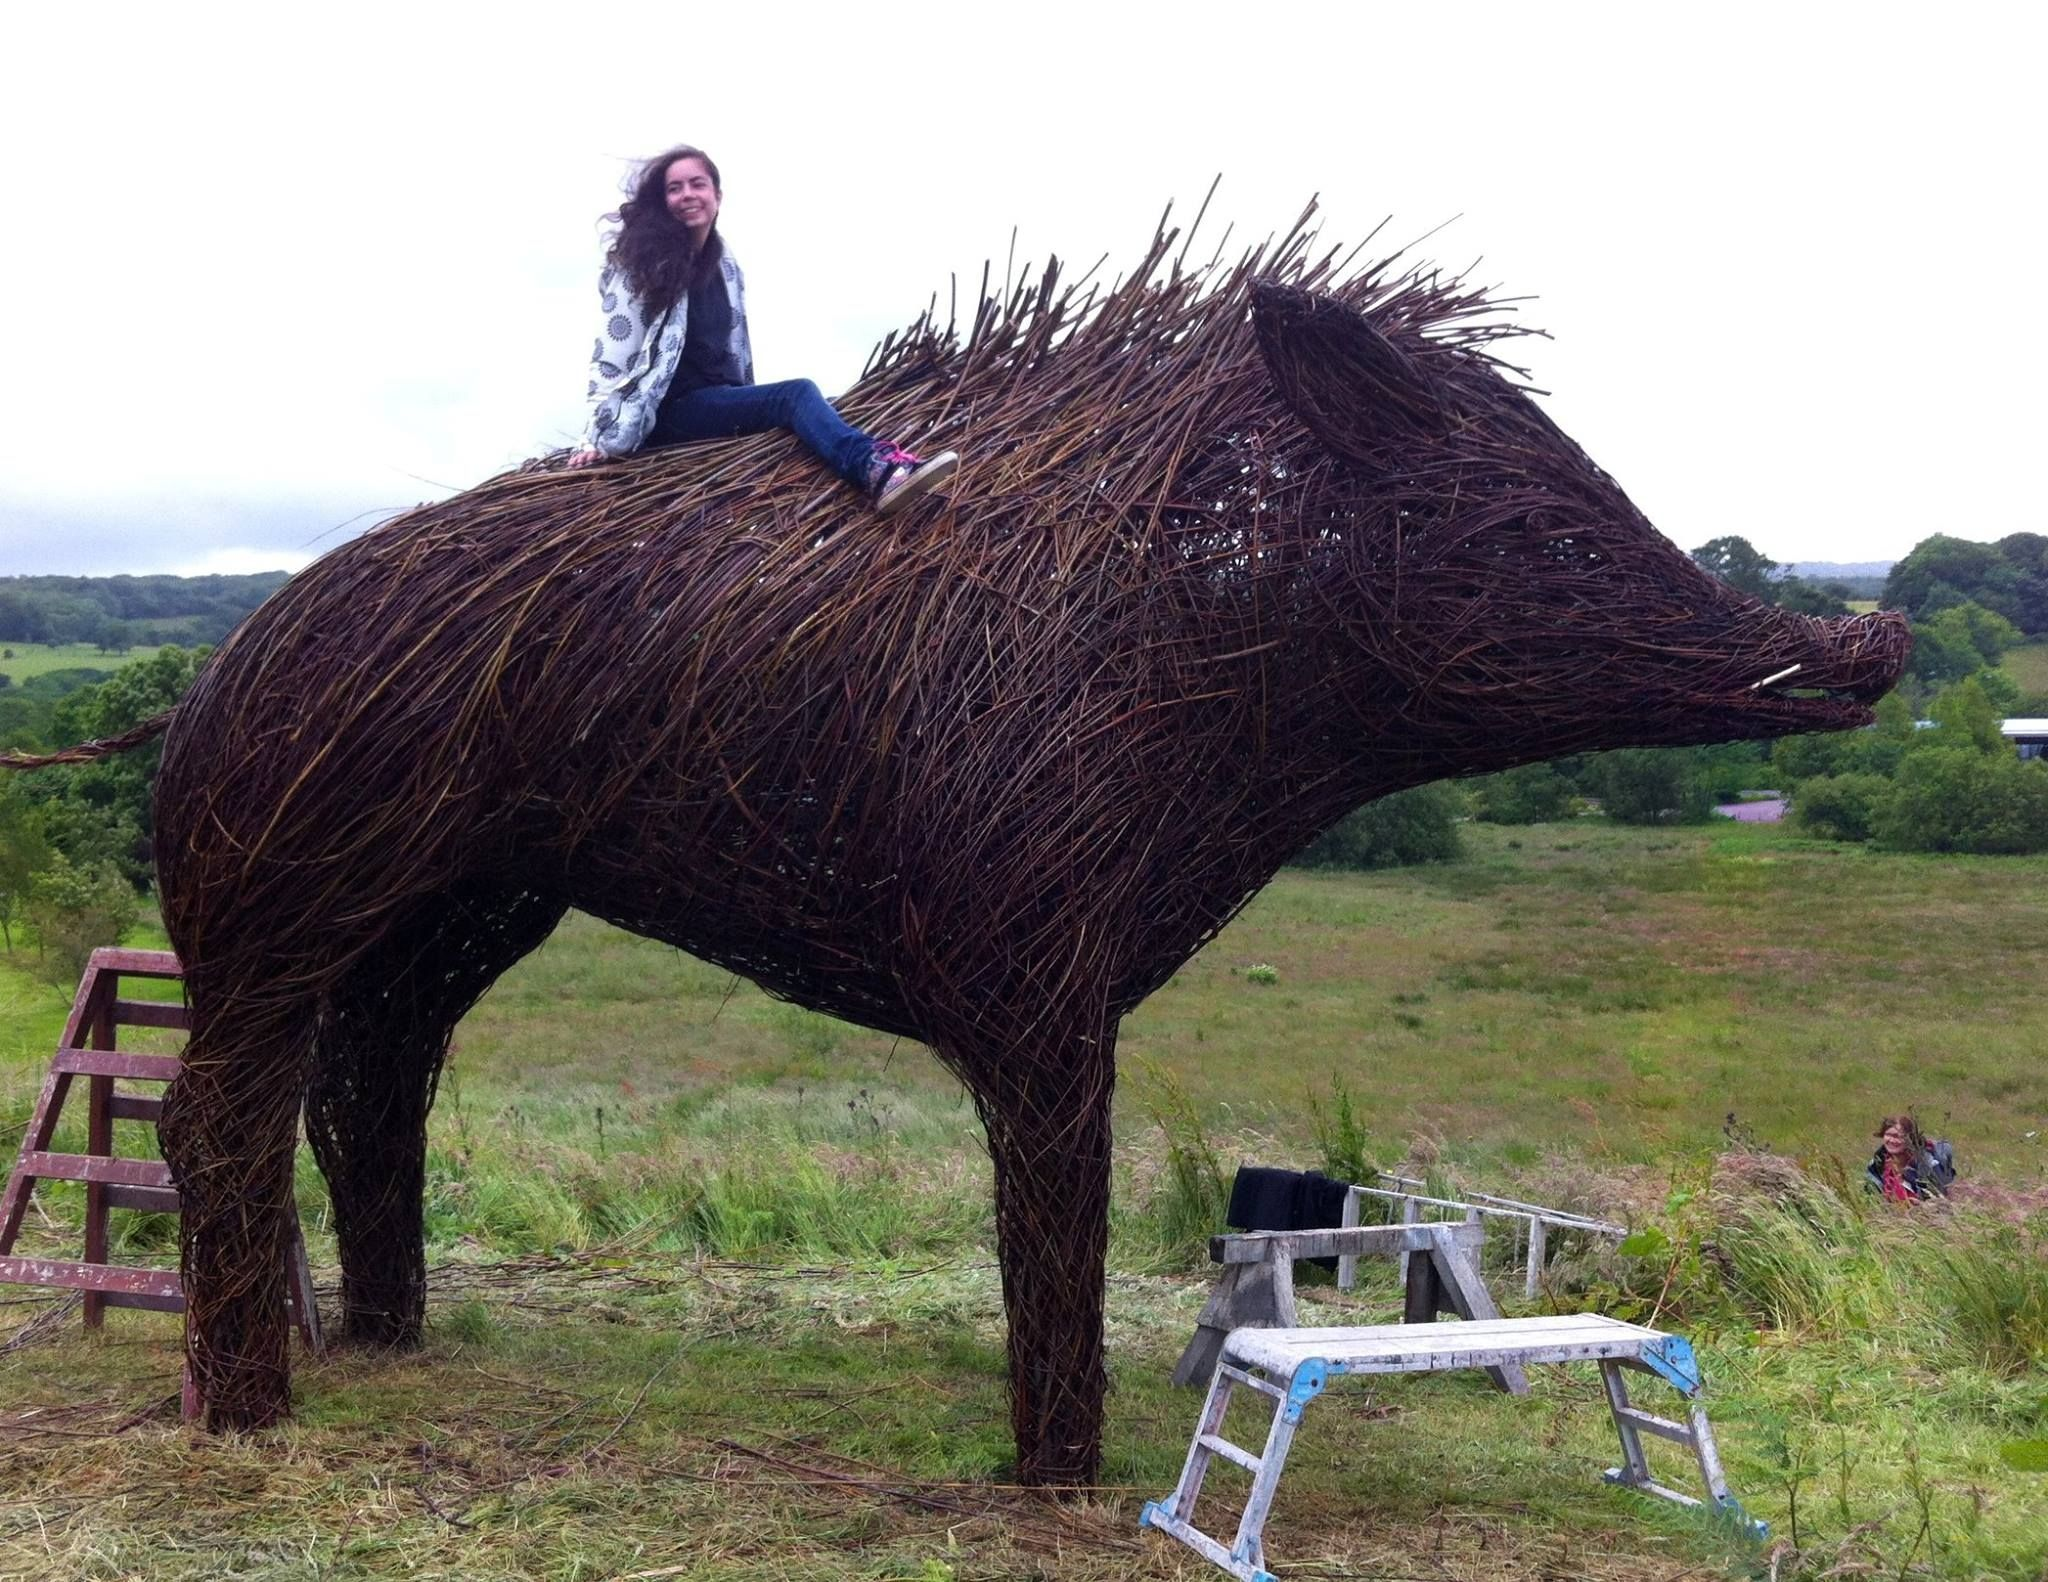 Michelle Cain and her team at Welsh Basket Makers built a large sculpture of a wild boar that stands at the National Botanic Garden of Wales in Carmarthenshire.